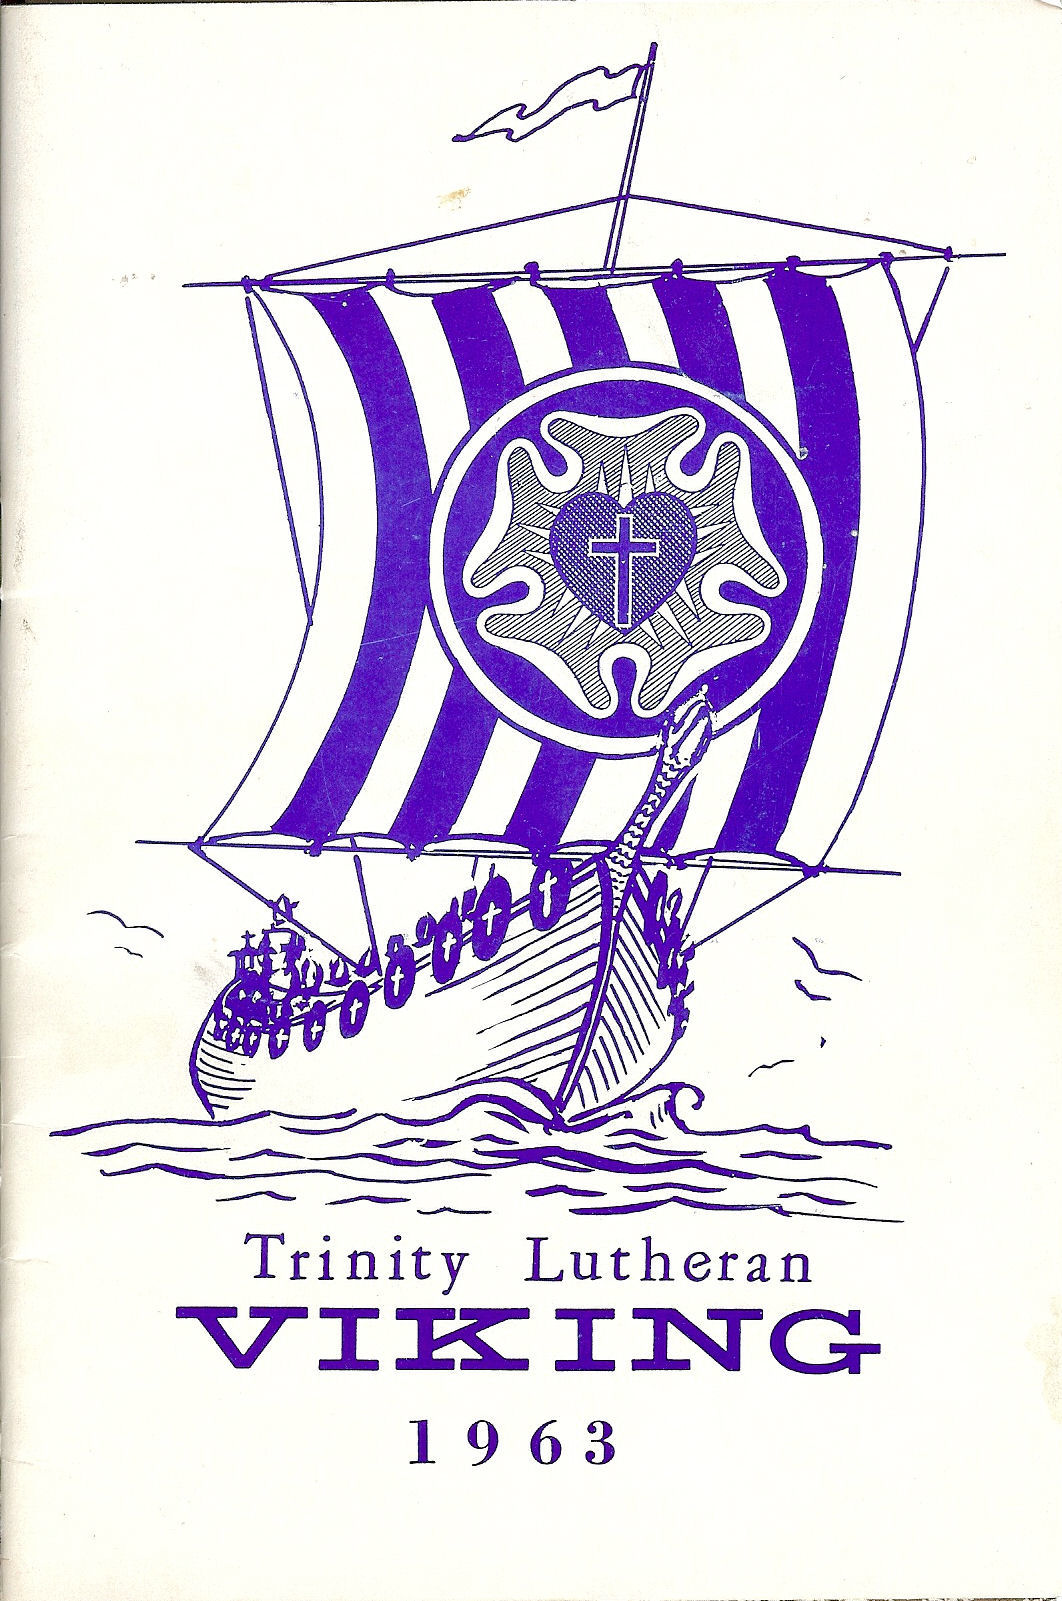 62-63 Yearbook Cover